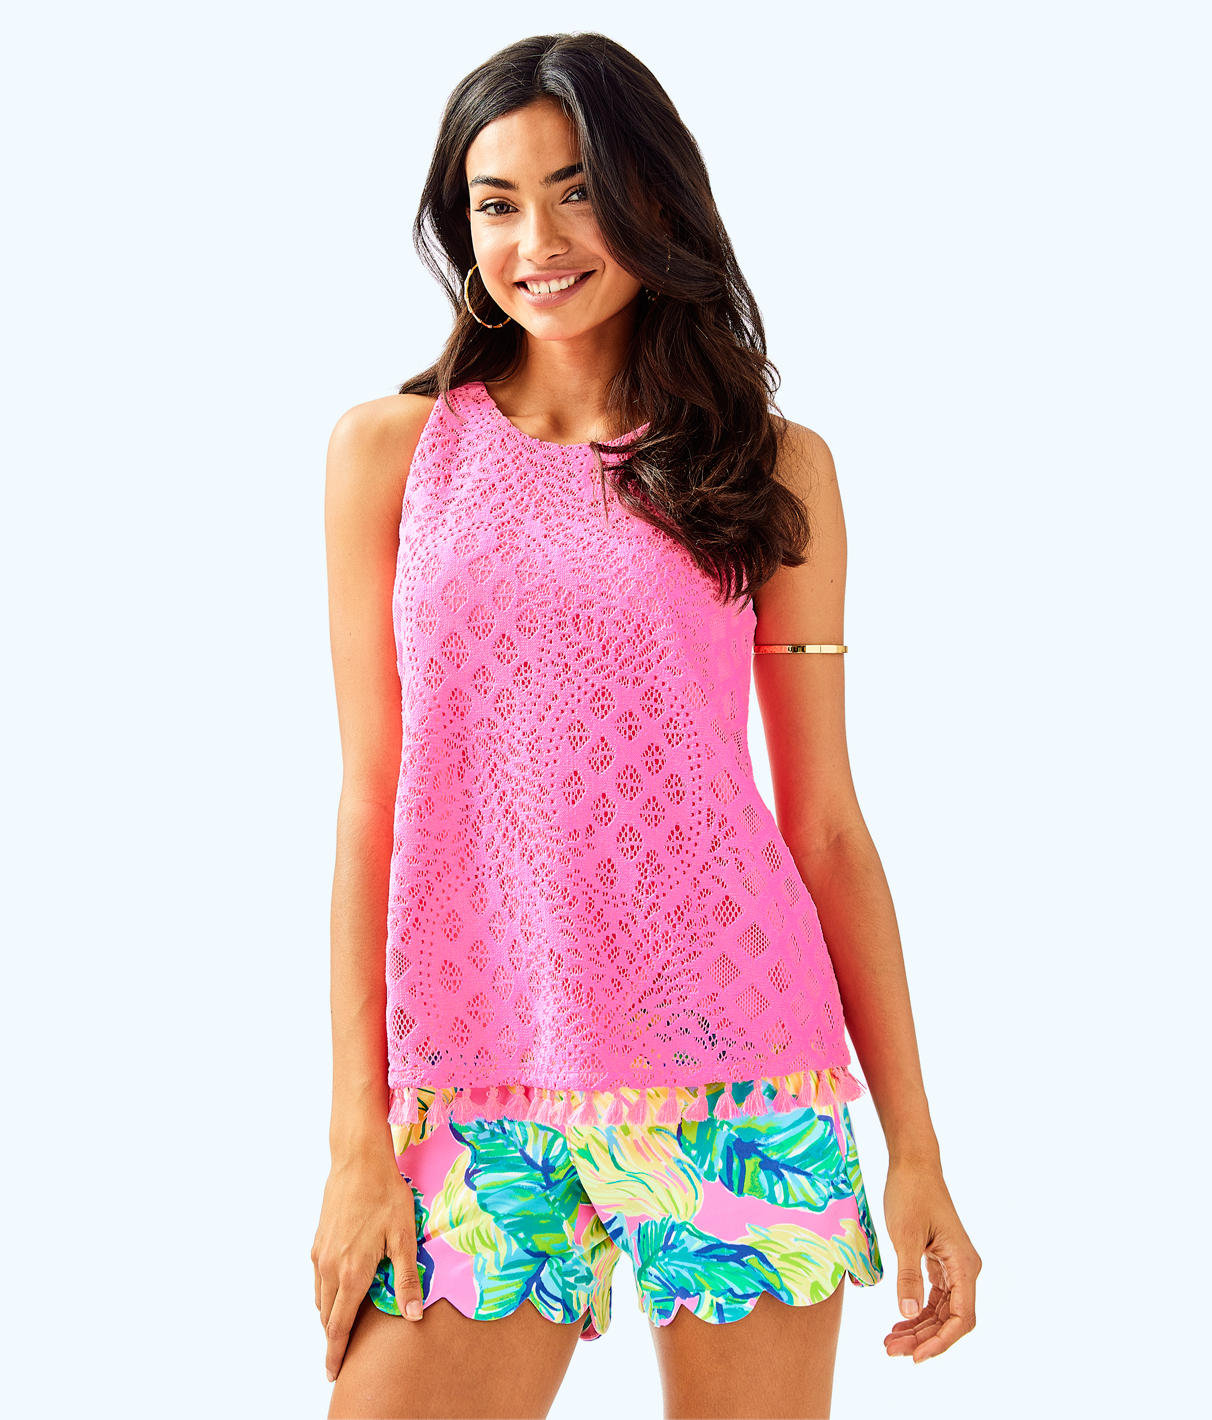 Lilly Pulitzer Lilly Pulitzer Womens Lynn Top